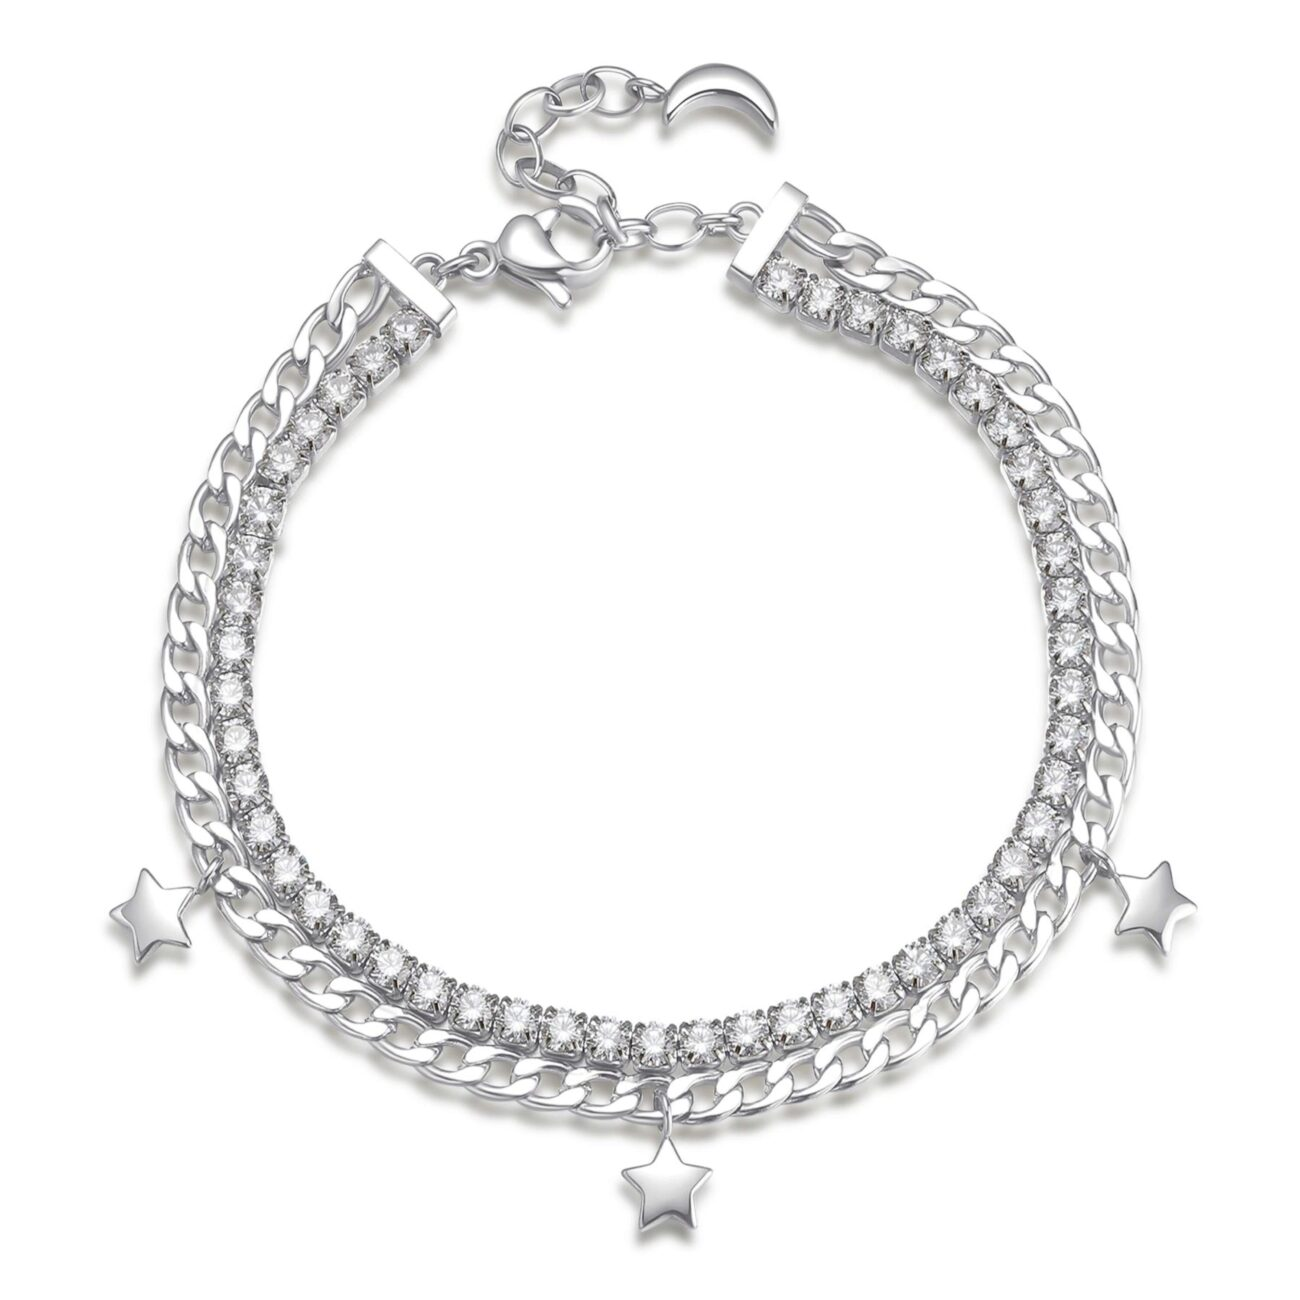 304 stainless steel double tennis bracelet with white cubic zirconia, crystals and star pendants.